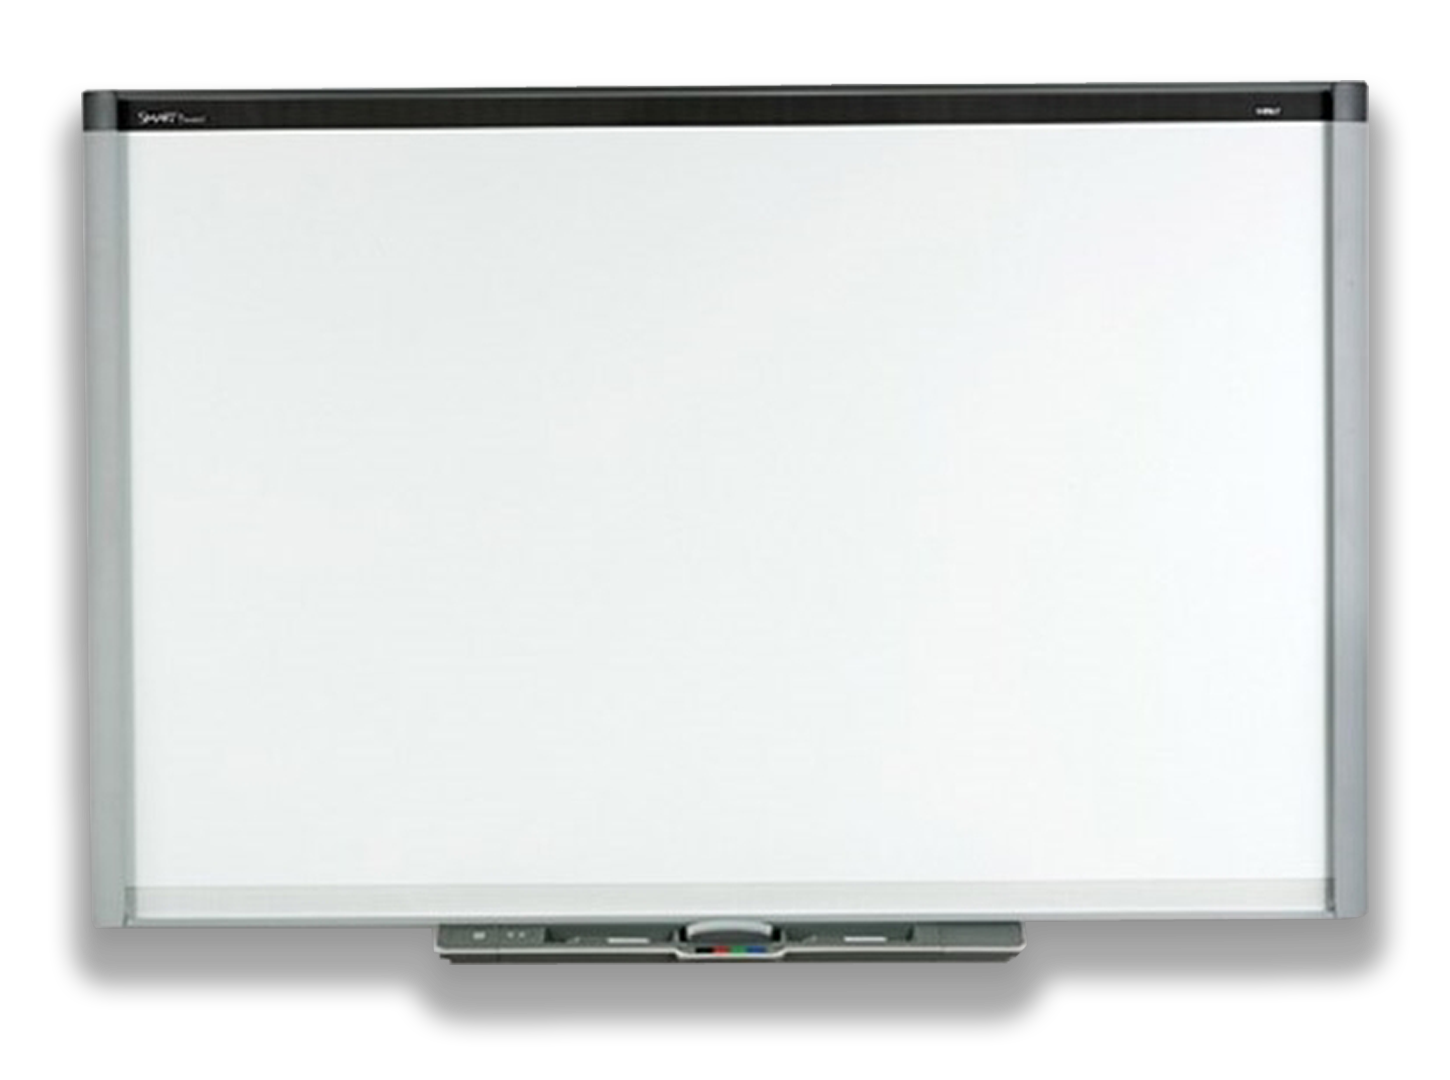 Smartboard drawing digital. Smart board